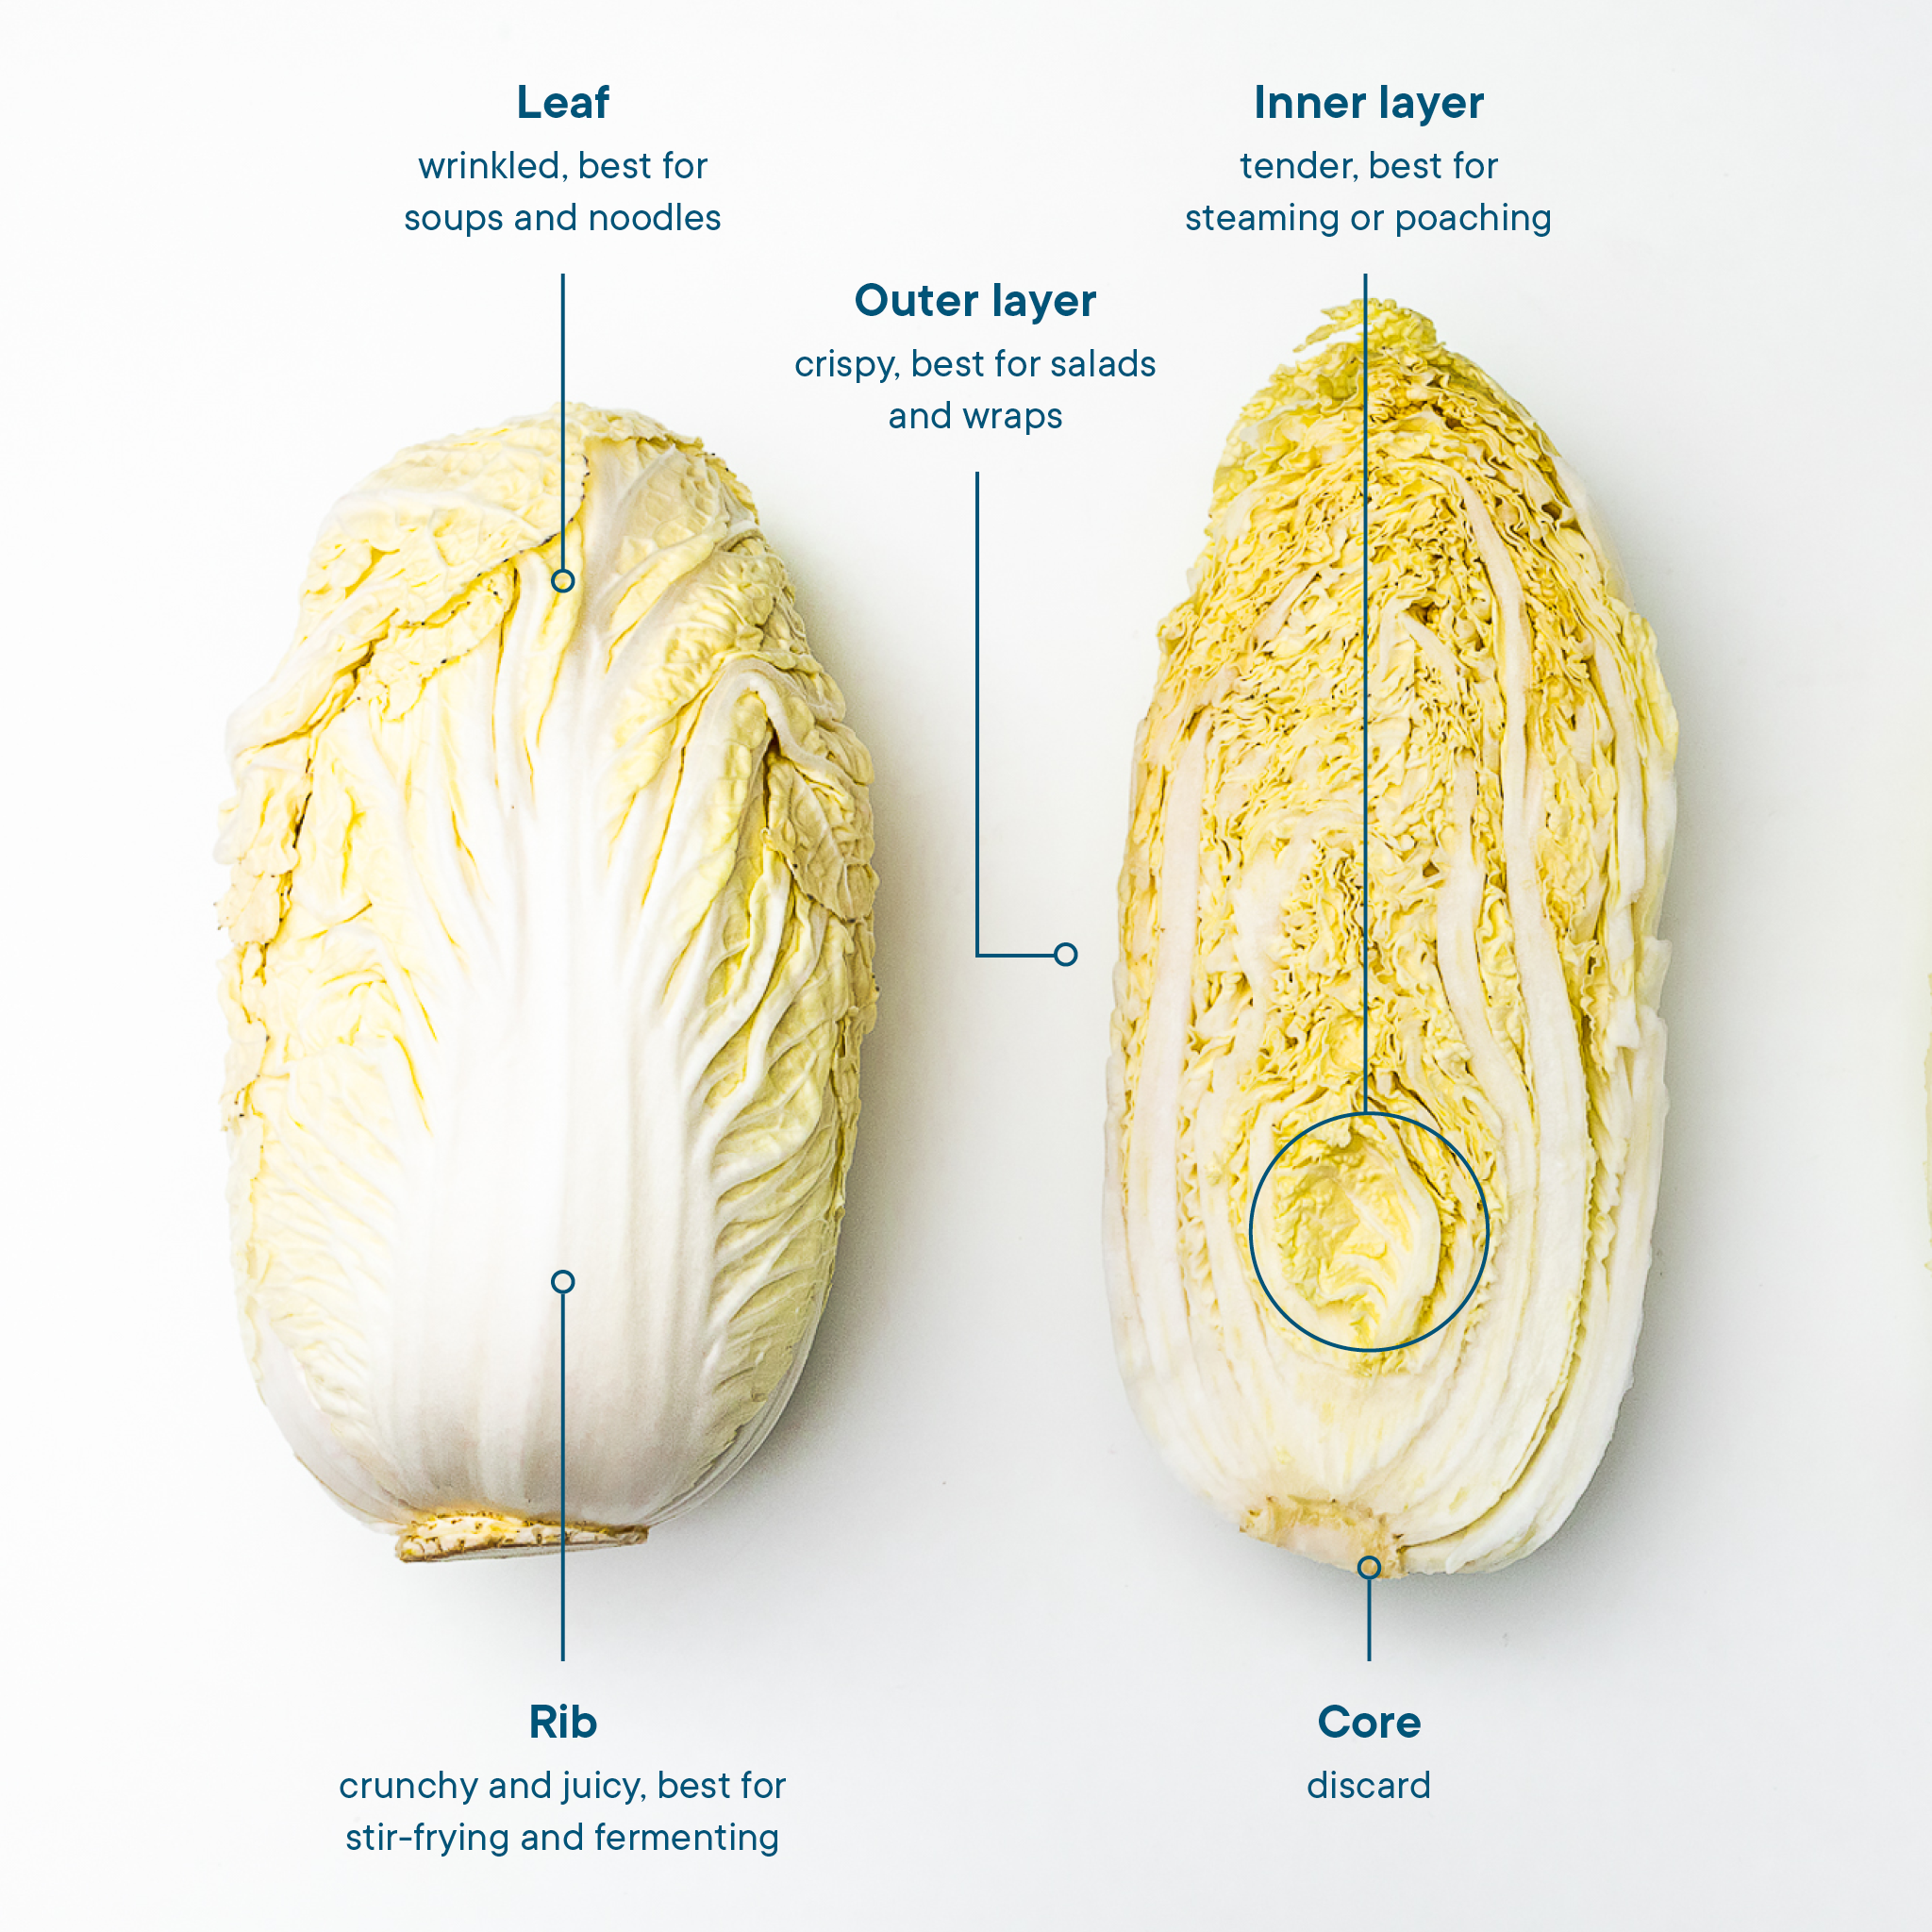 Everything You Need To Know About Preparing And Storing Napa Cabbage Stories Kitchen Stories